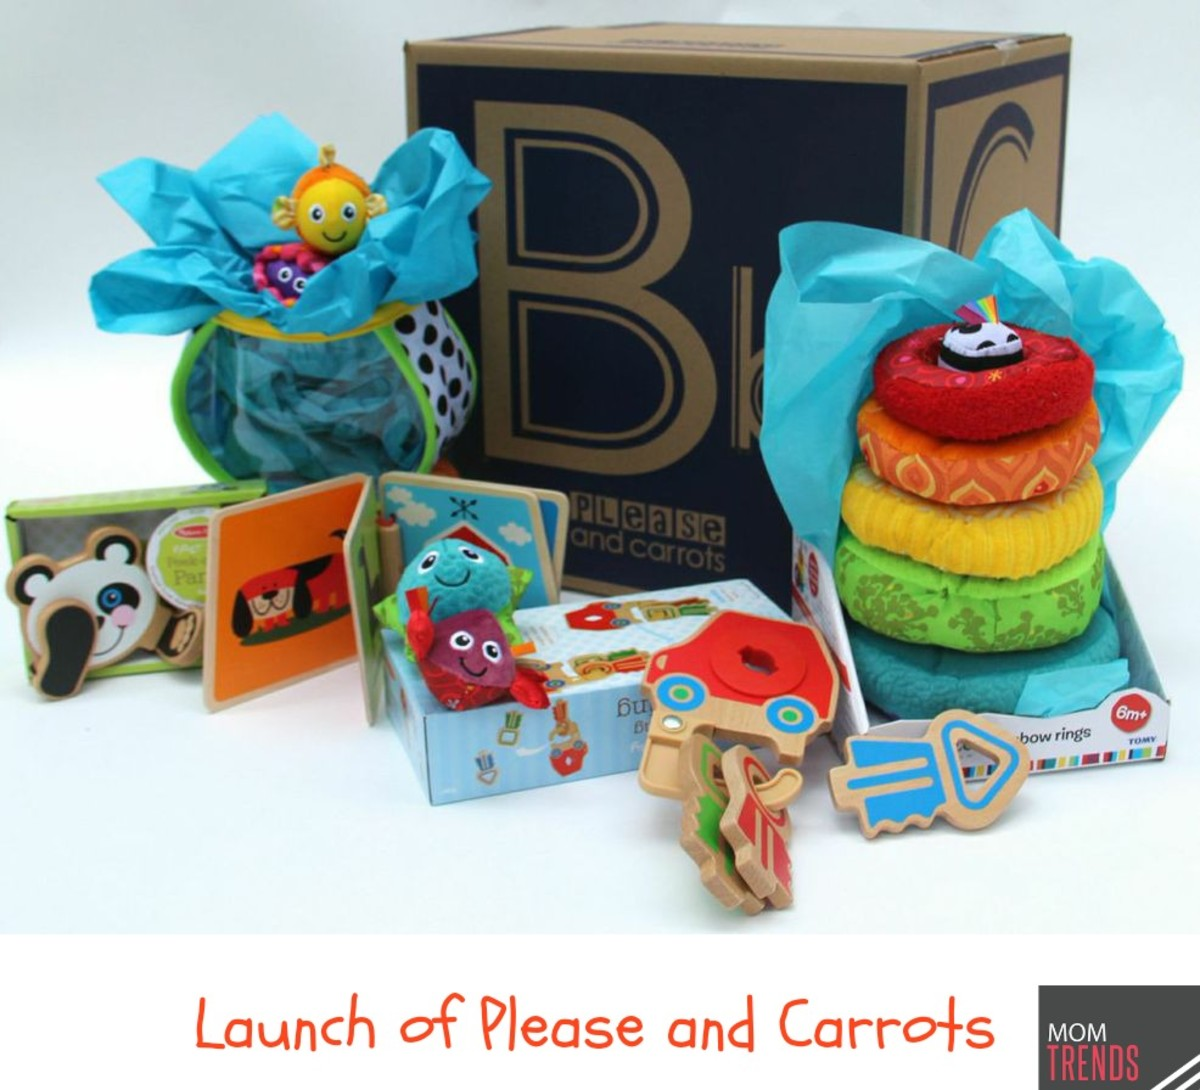 Launch of Please and Carrots